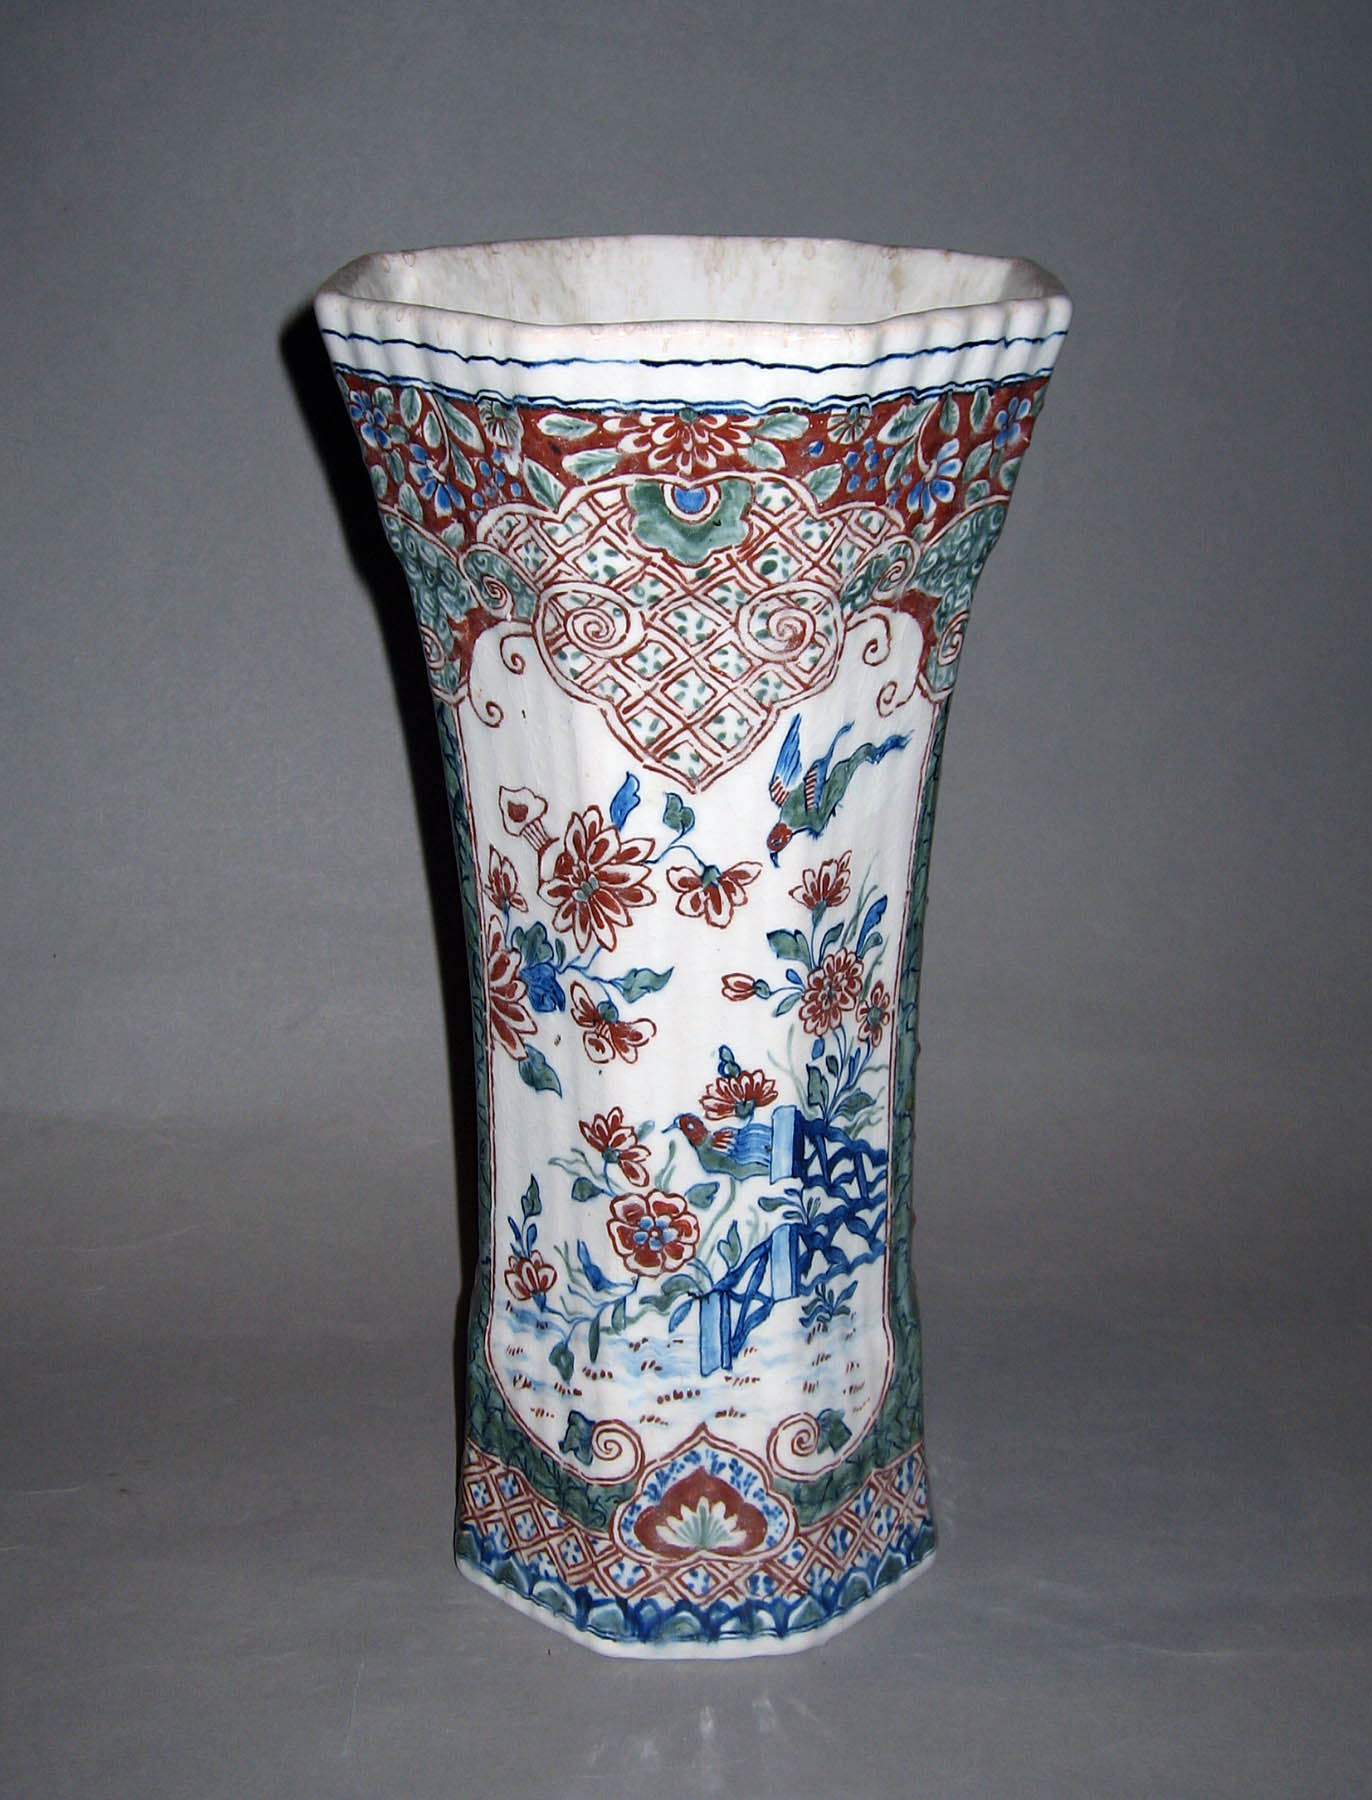 1982.0117.005 Earthenware vase